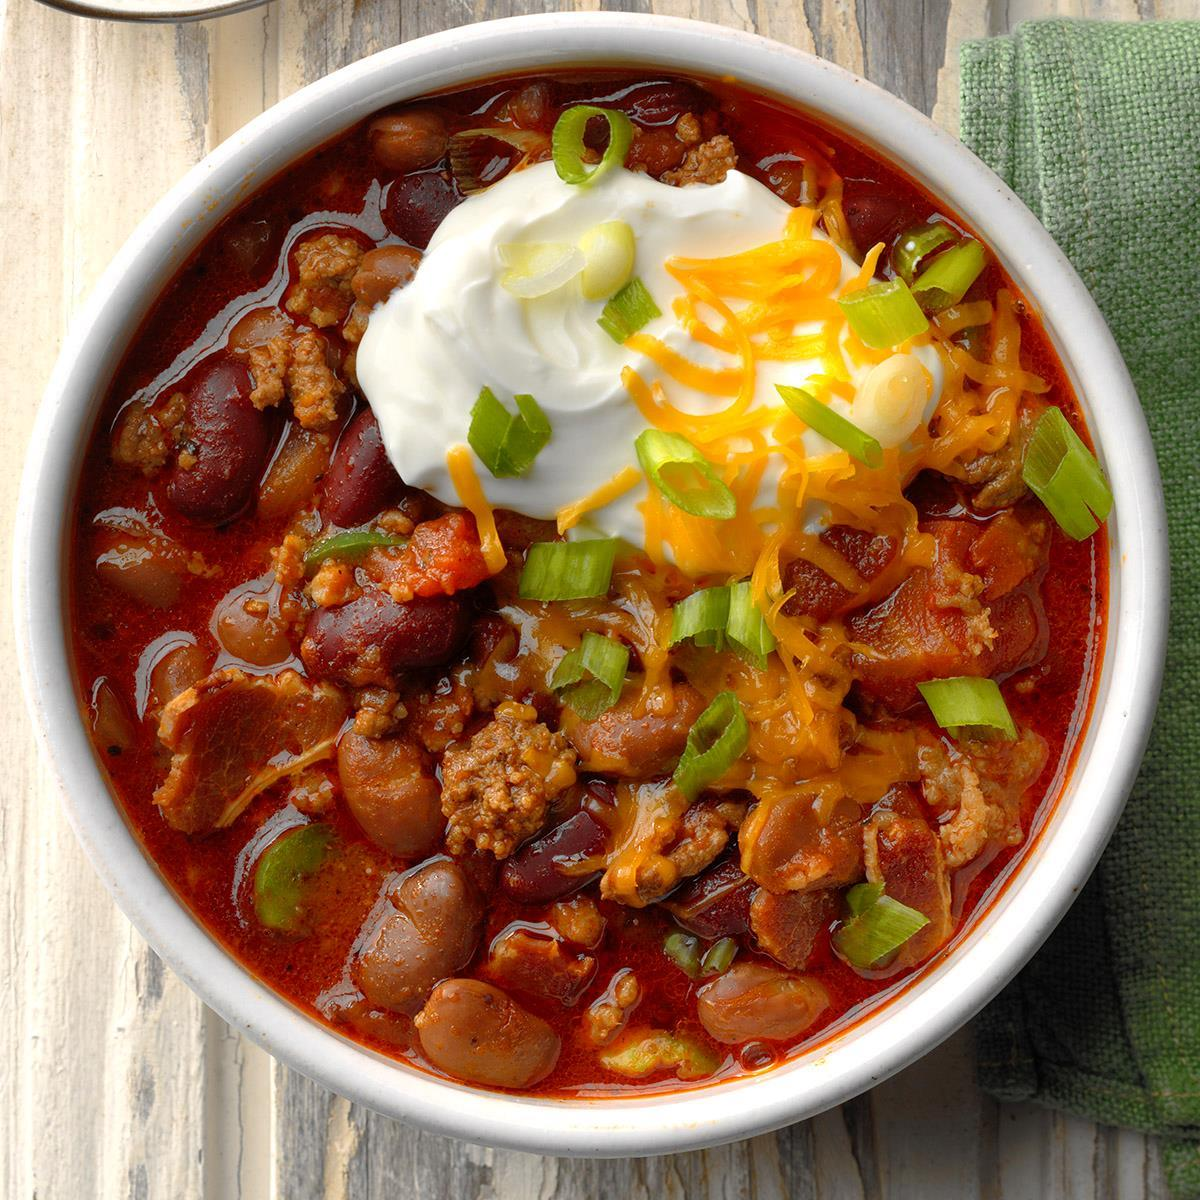 Spicy Touchdown Chili Recipe How To Make It Taste Of Home